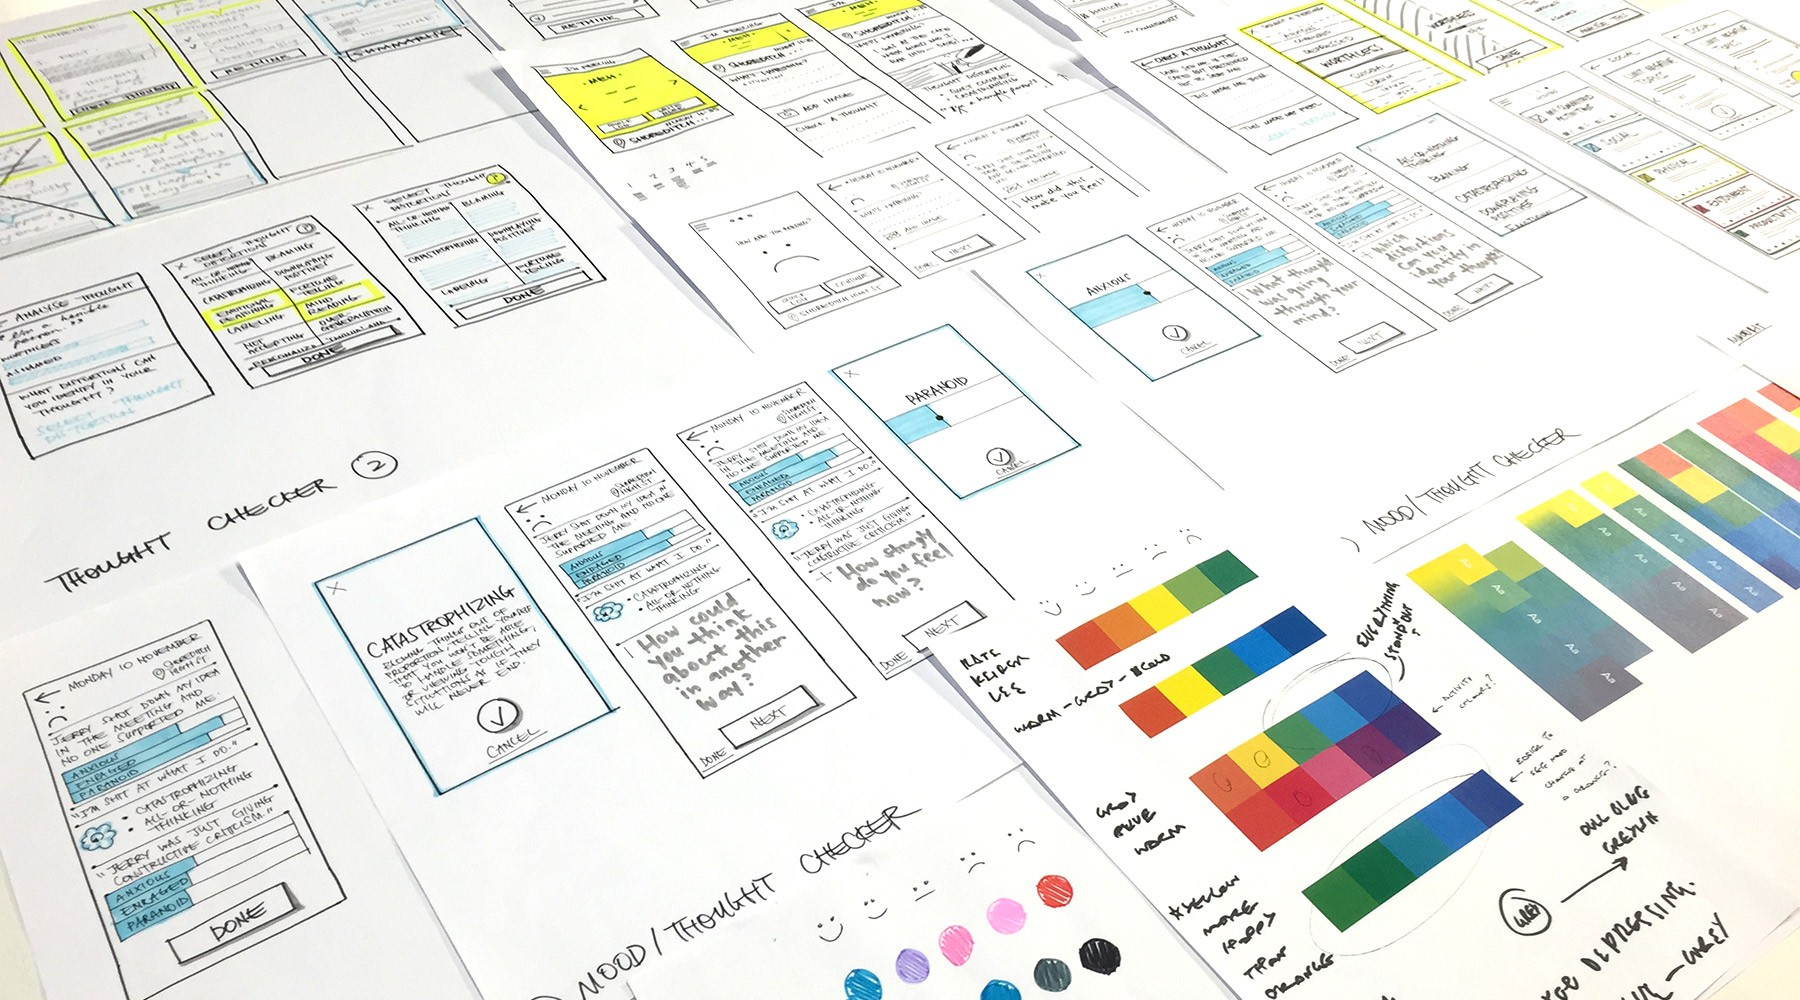 caseStudy-moodnotes-03